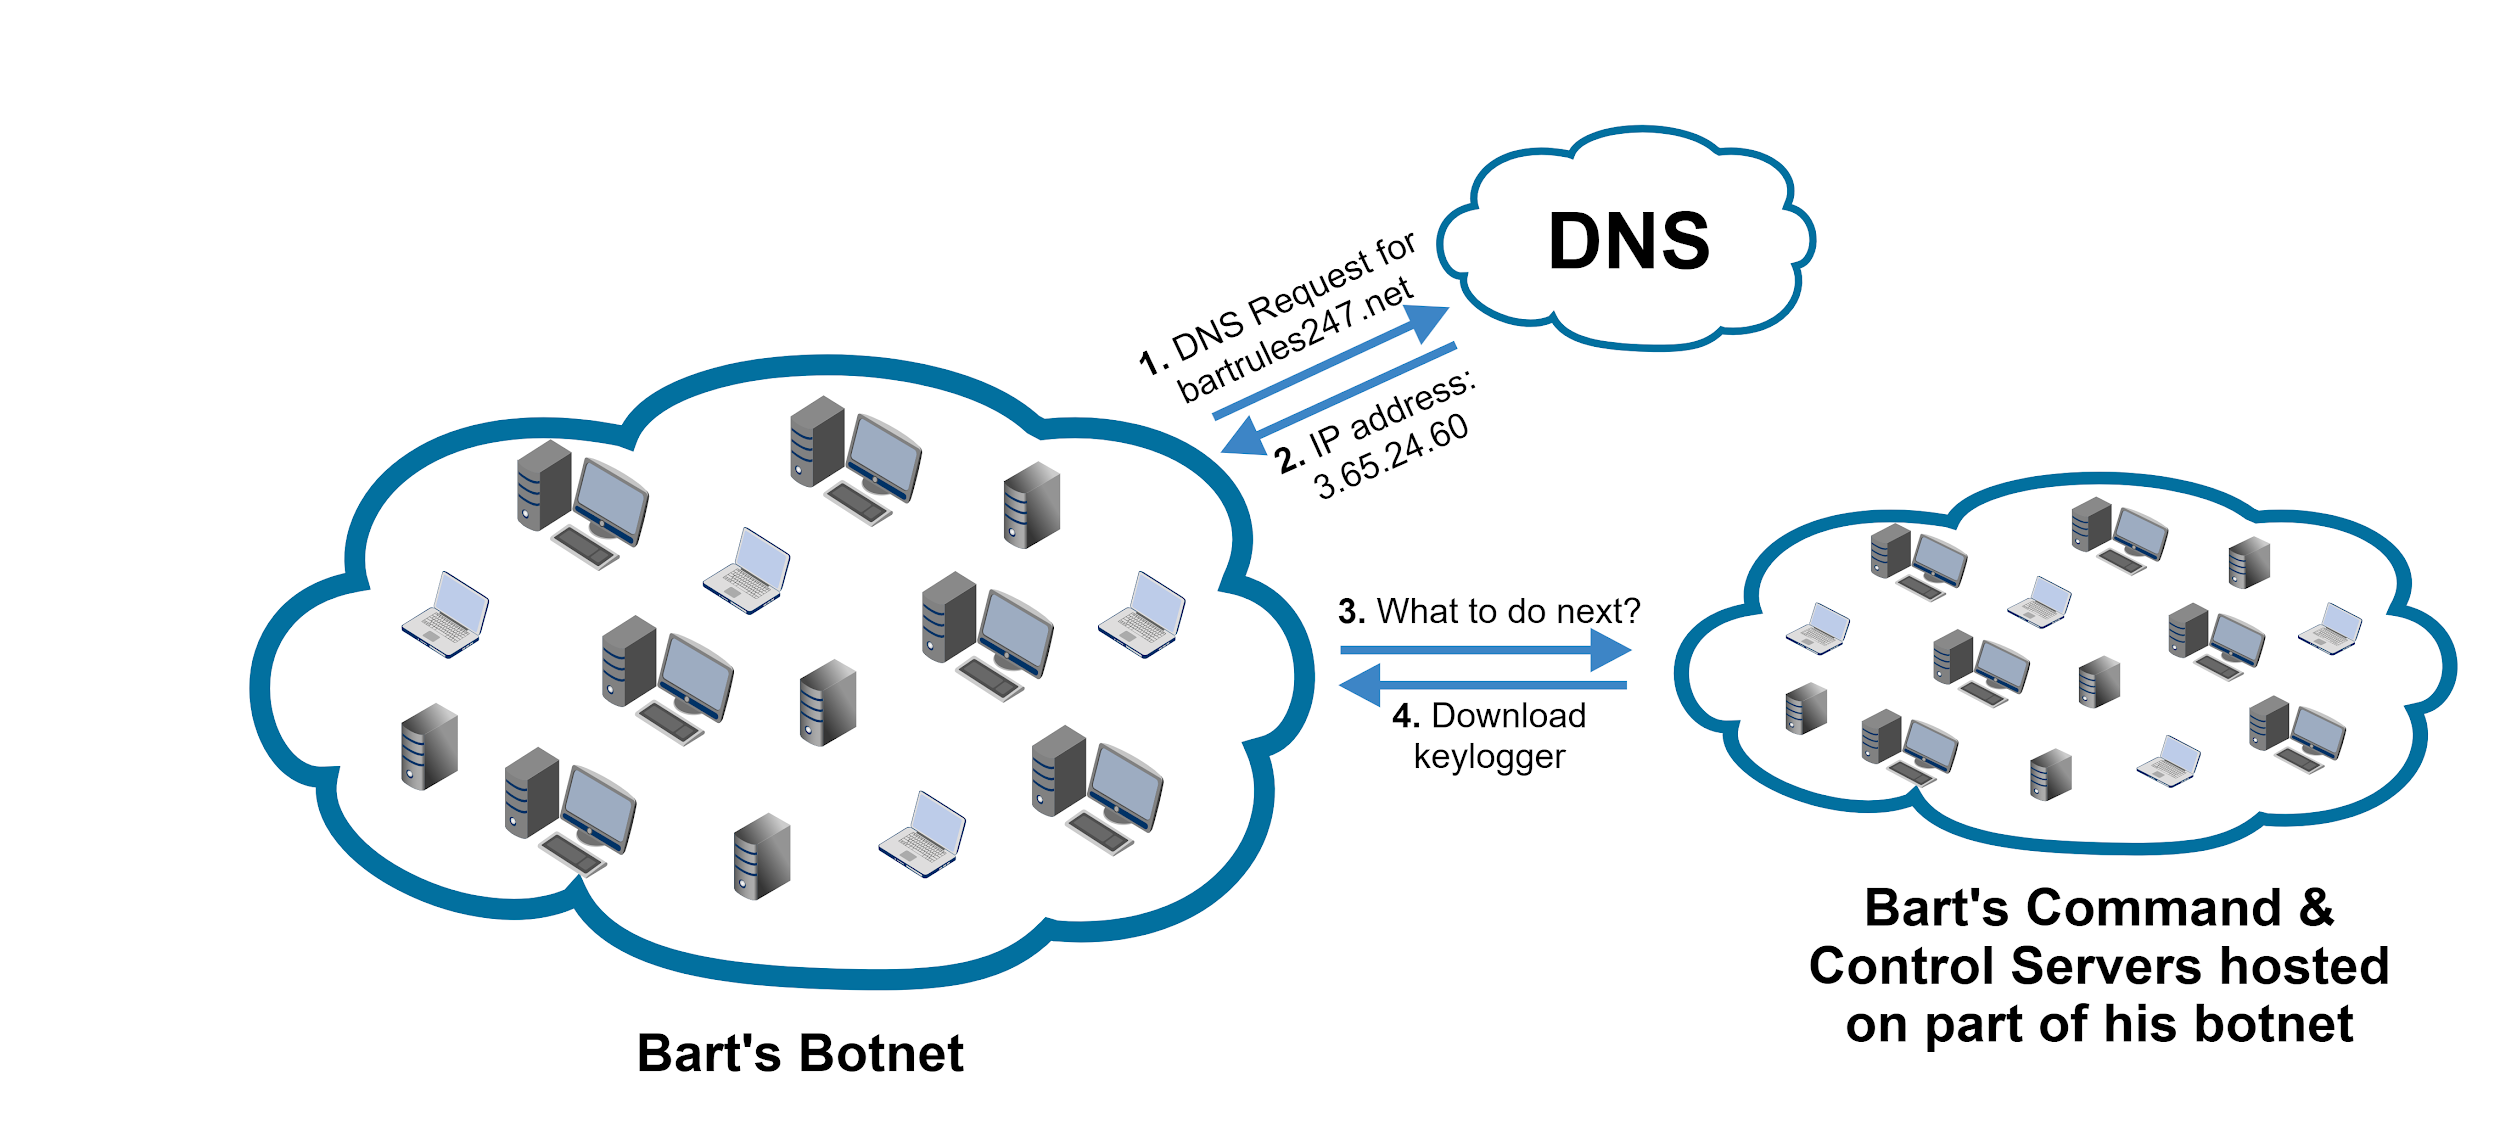 Bart's botnet infrastructure: 1) DNS request for attacker's C2 from botnet to DNS; 2) Reponse from DNS to botnet including IP address; 3) Request for instructions from botnet to C2; 4) download keylogger instruction from C2 to botnet